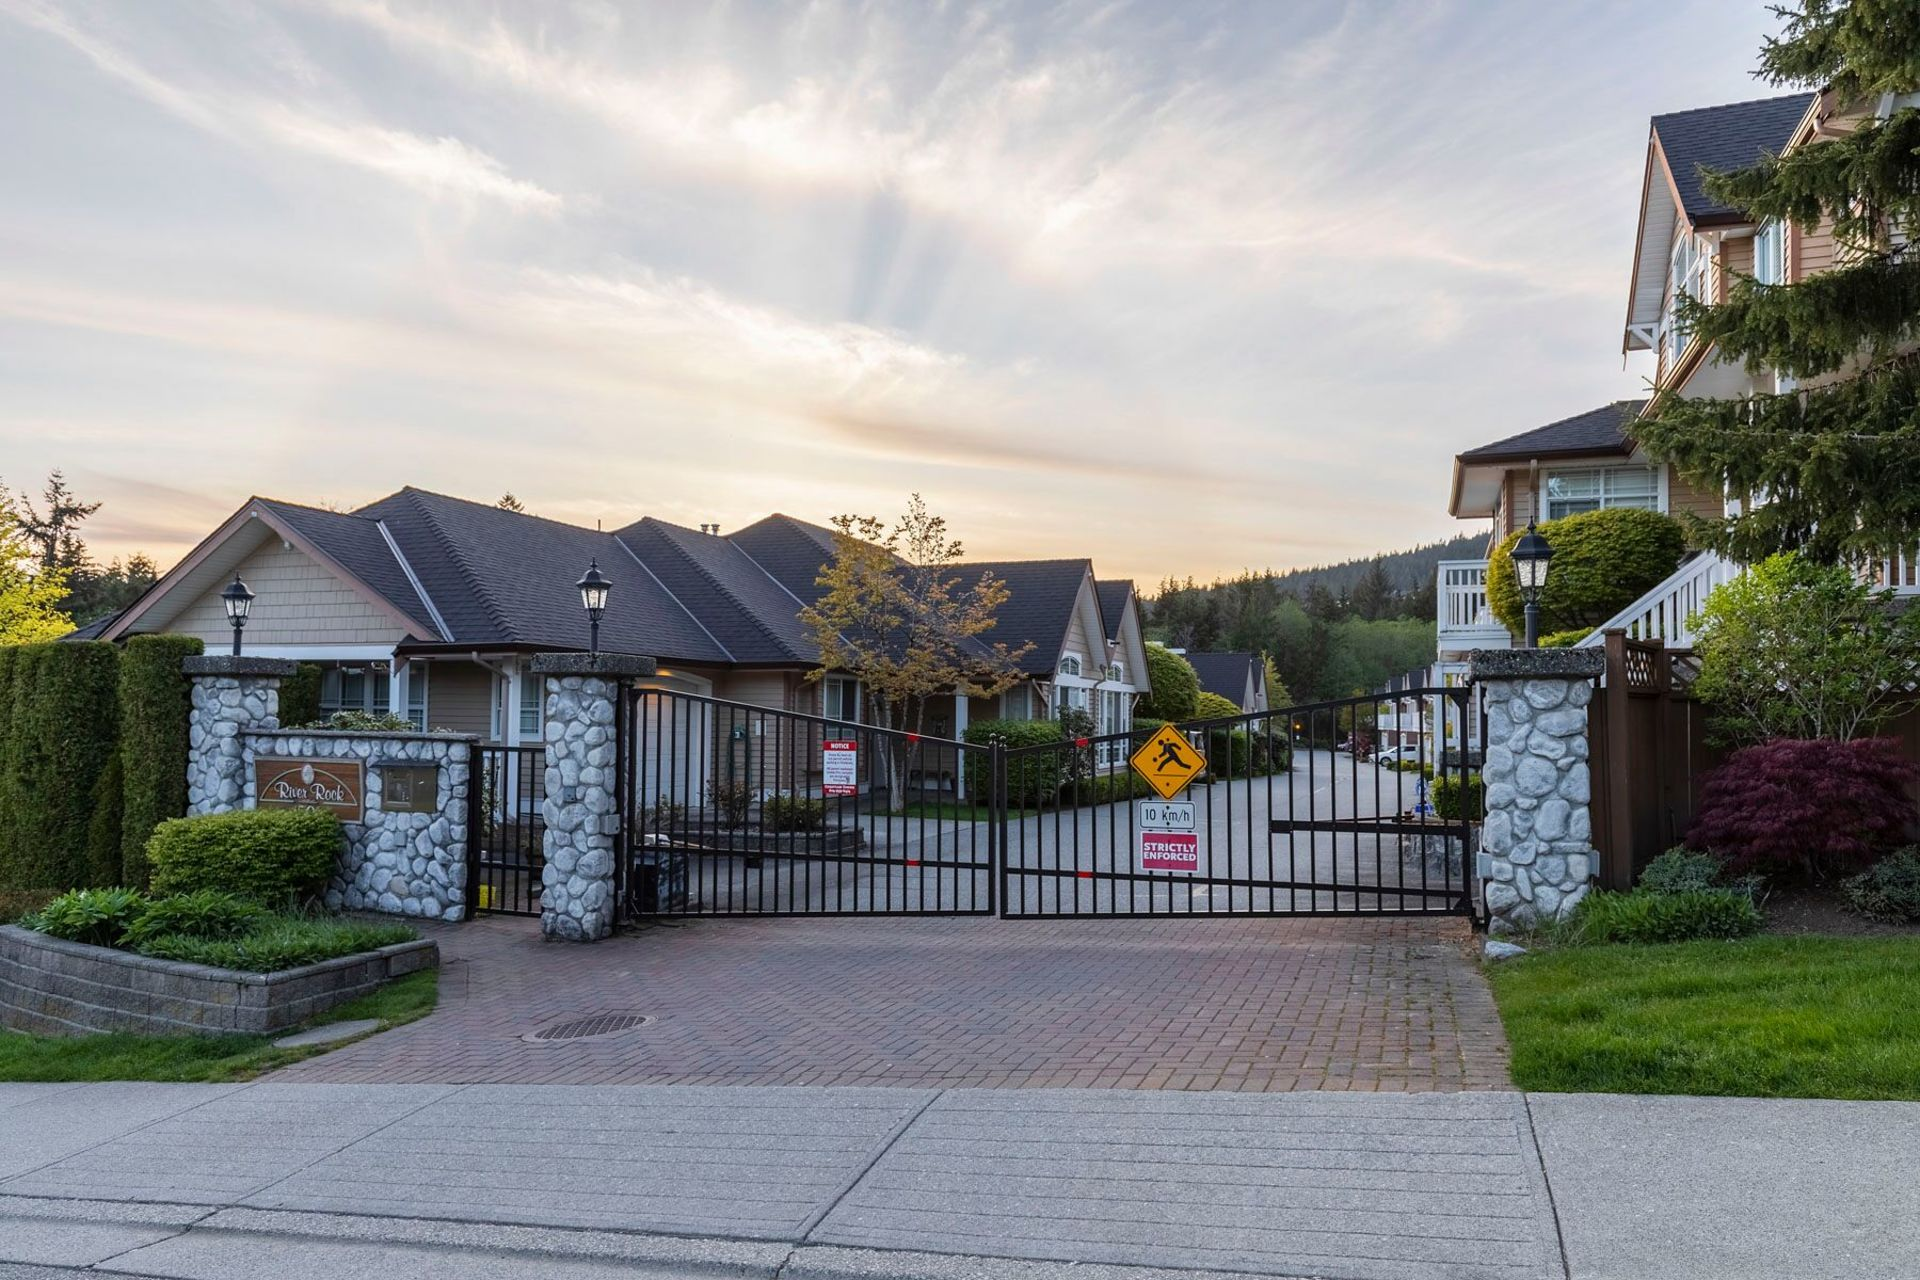 gafrpncq at 15 - 1506 Eagle Mountain Drive, Westwood Plateau, Coquitlam